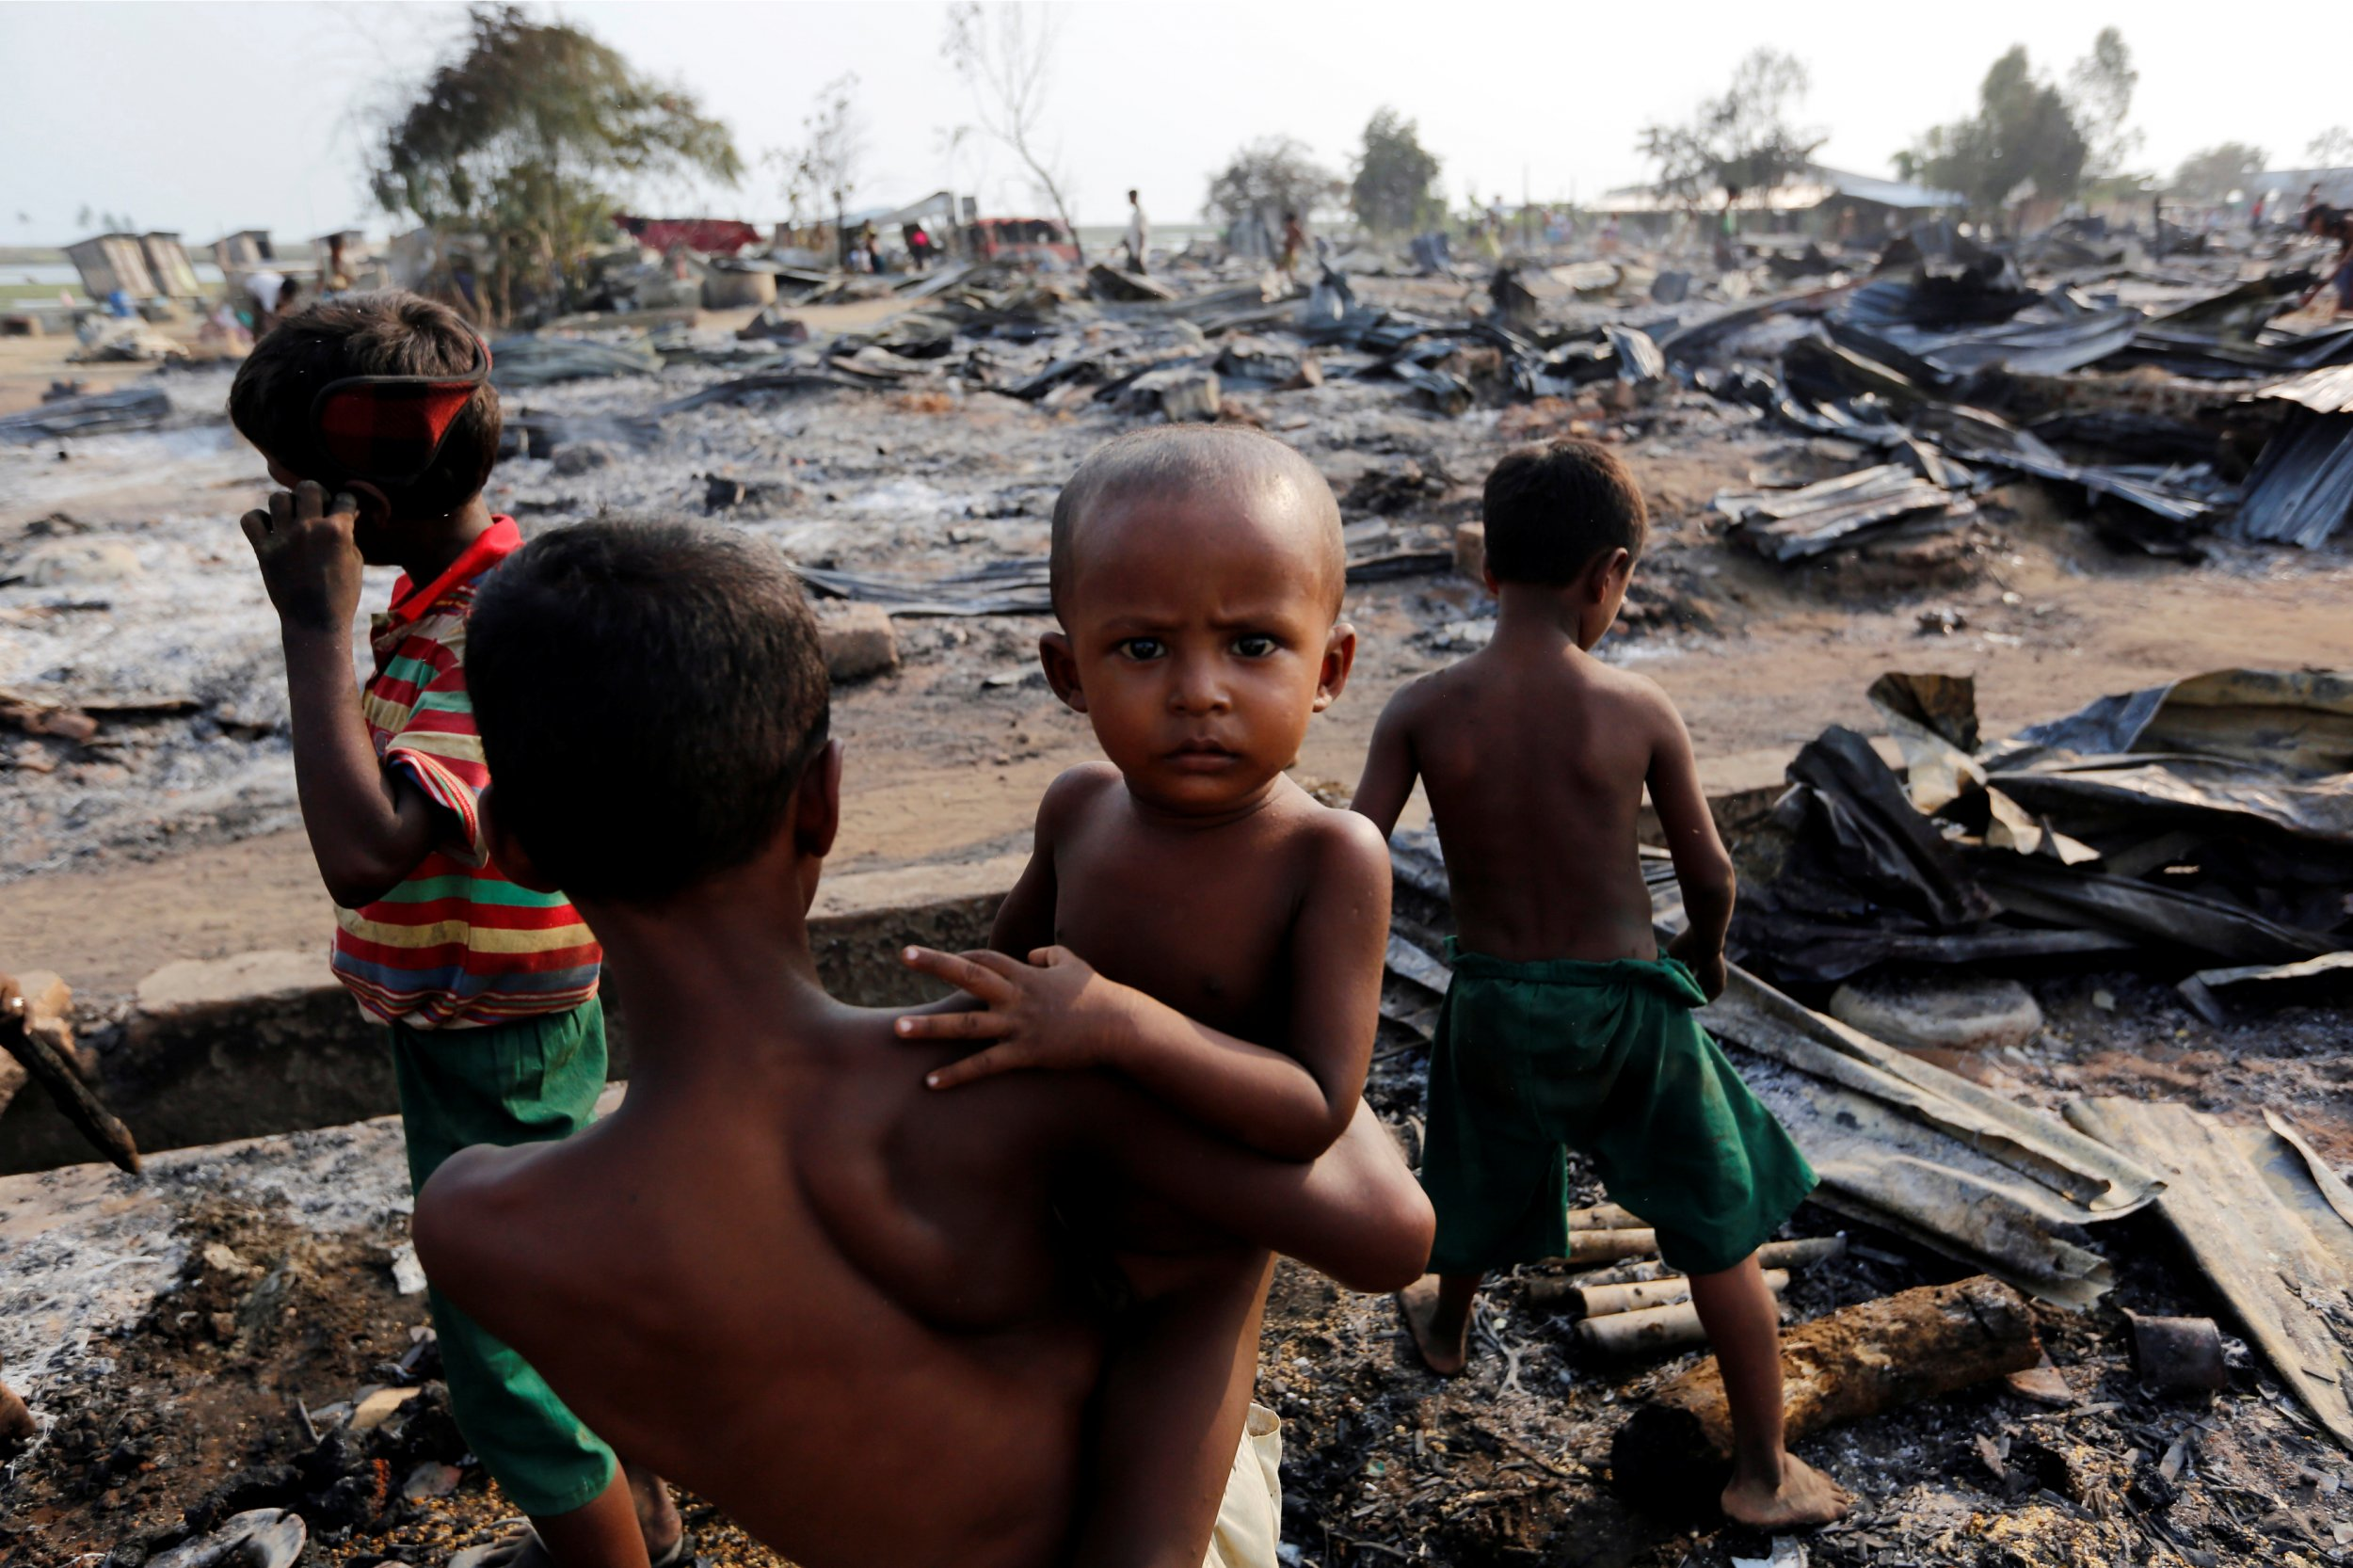 Camp for internally displaced Rohingya Muslims in Myanmar